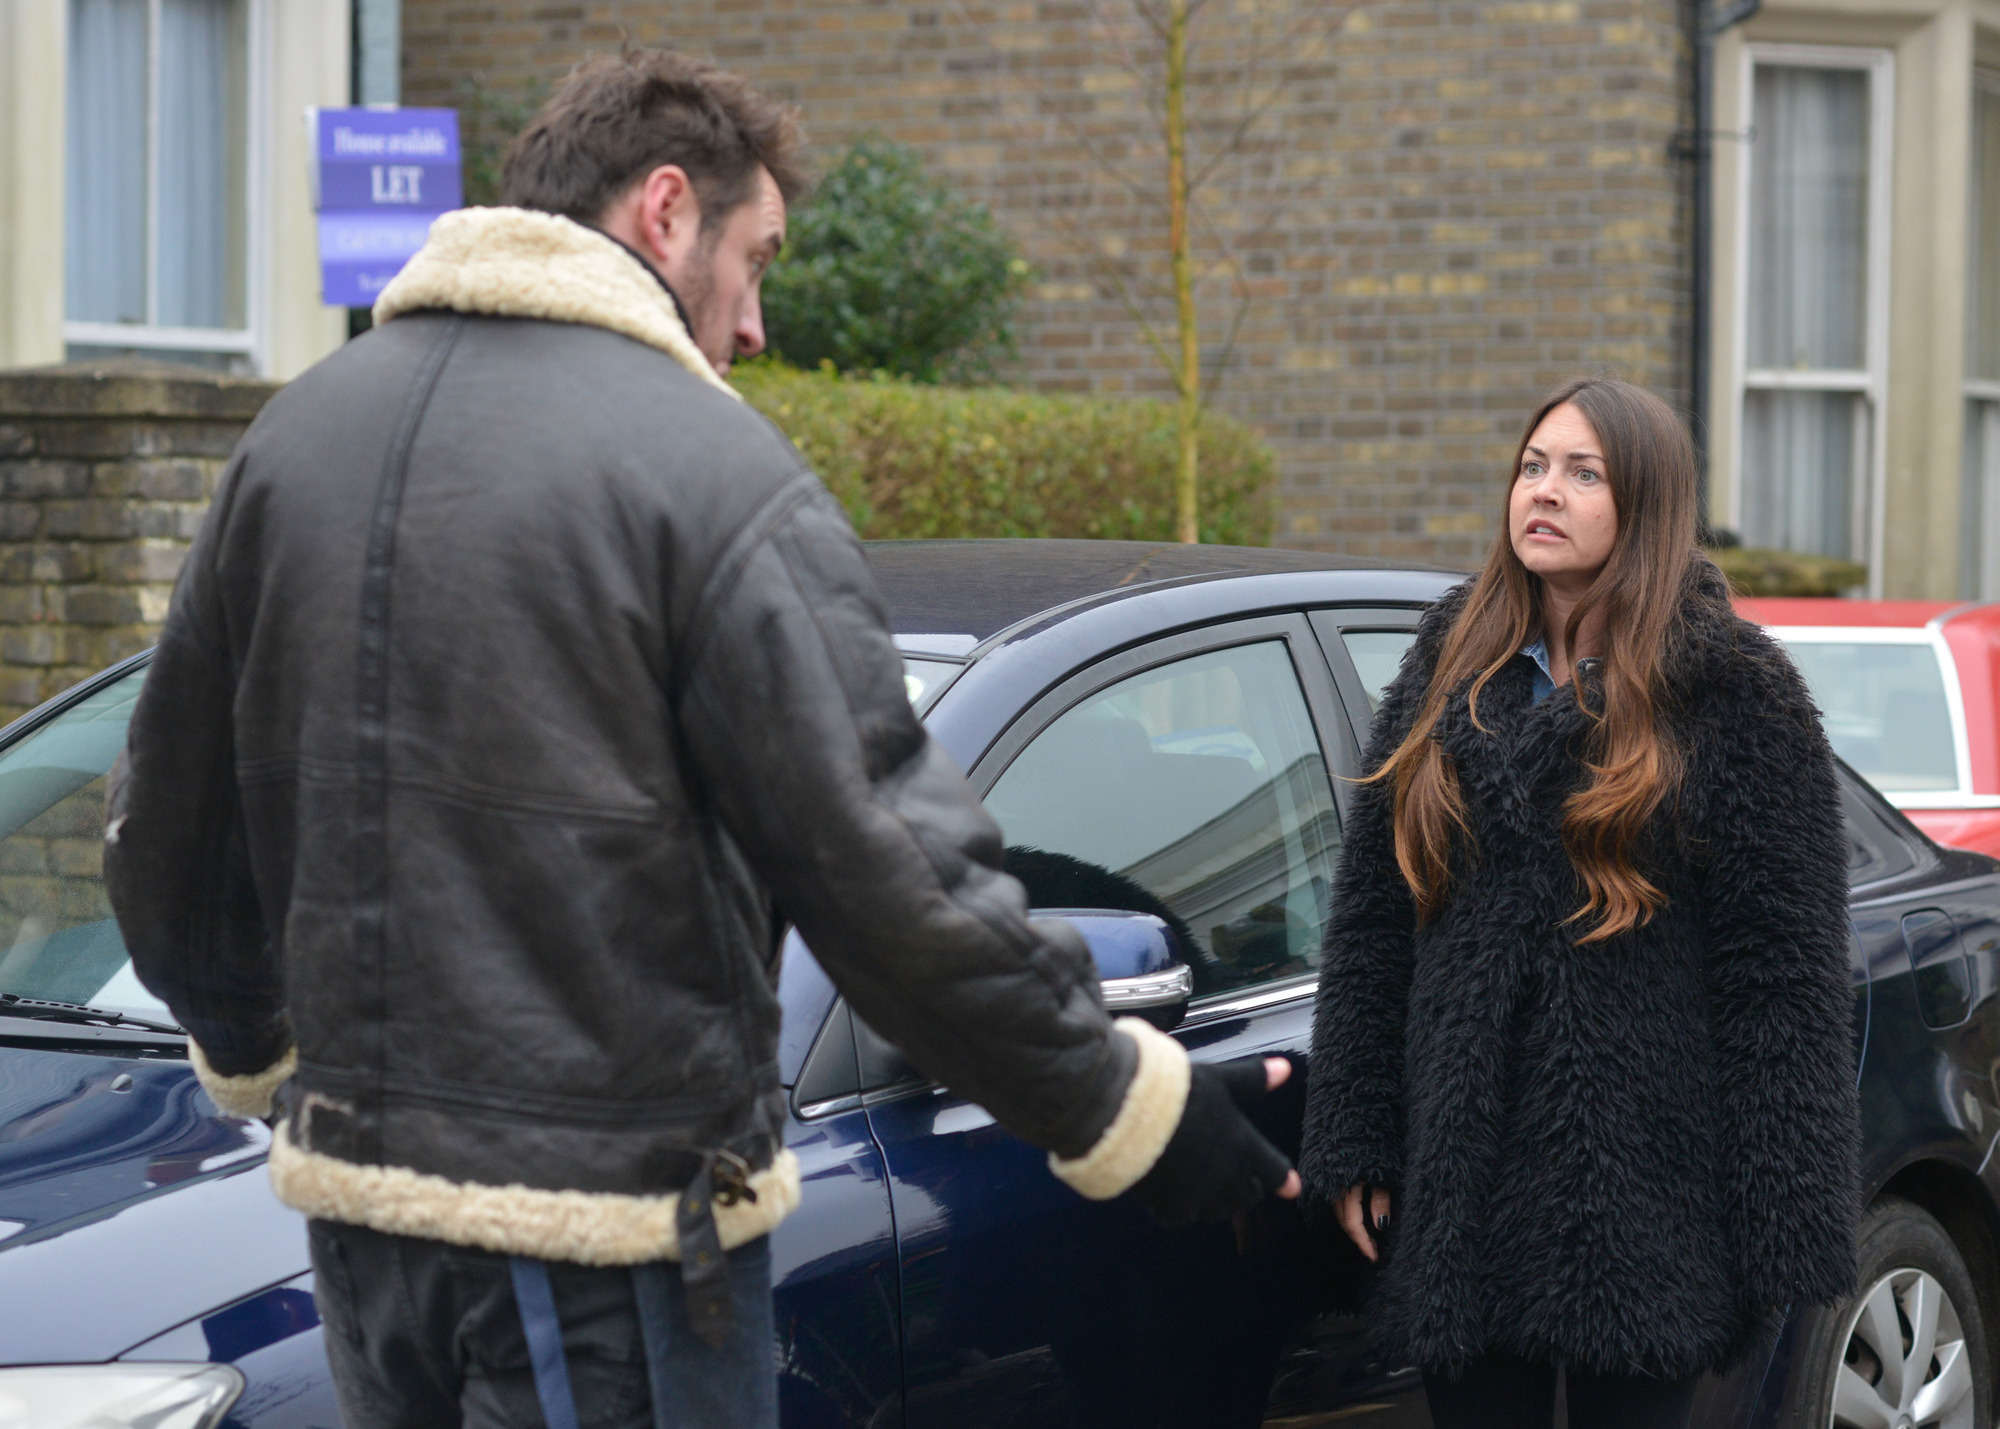 Martin stops Stacey from leaving in EastEnders